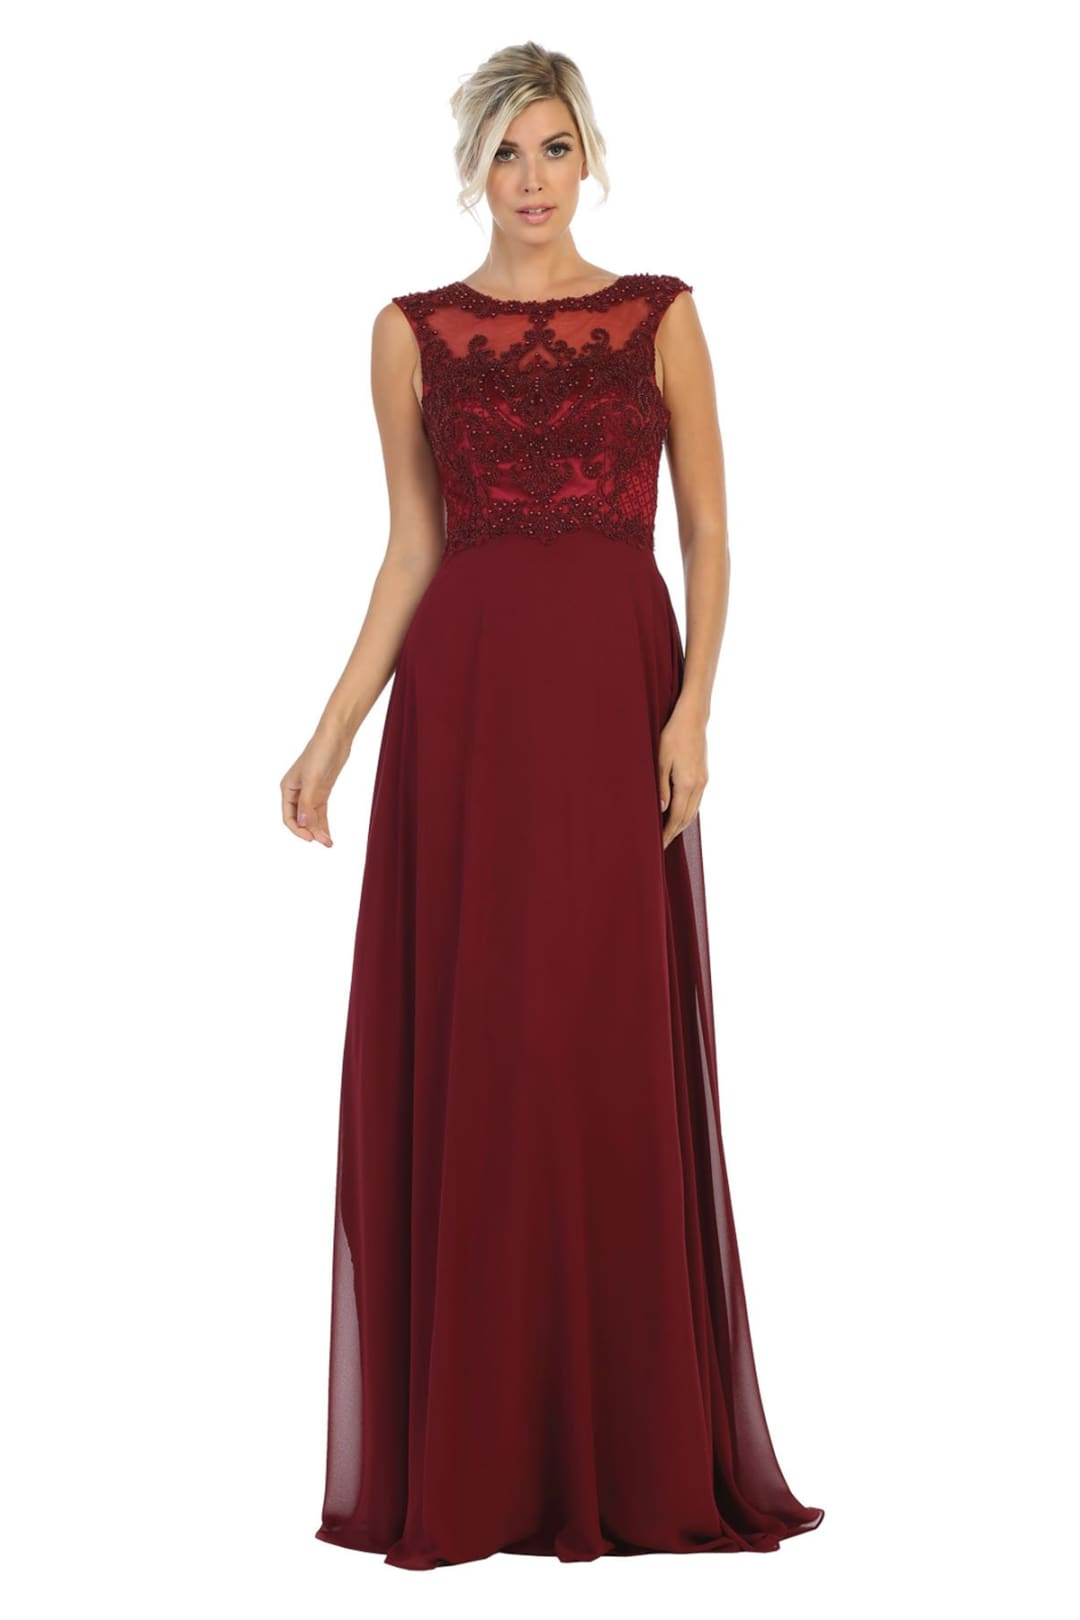 Elegant Lace Chiffon Dress - Burgundy / 4